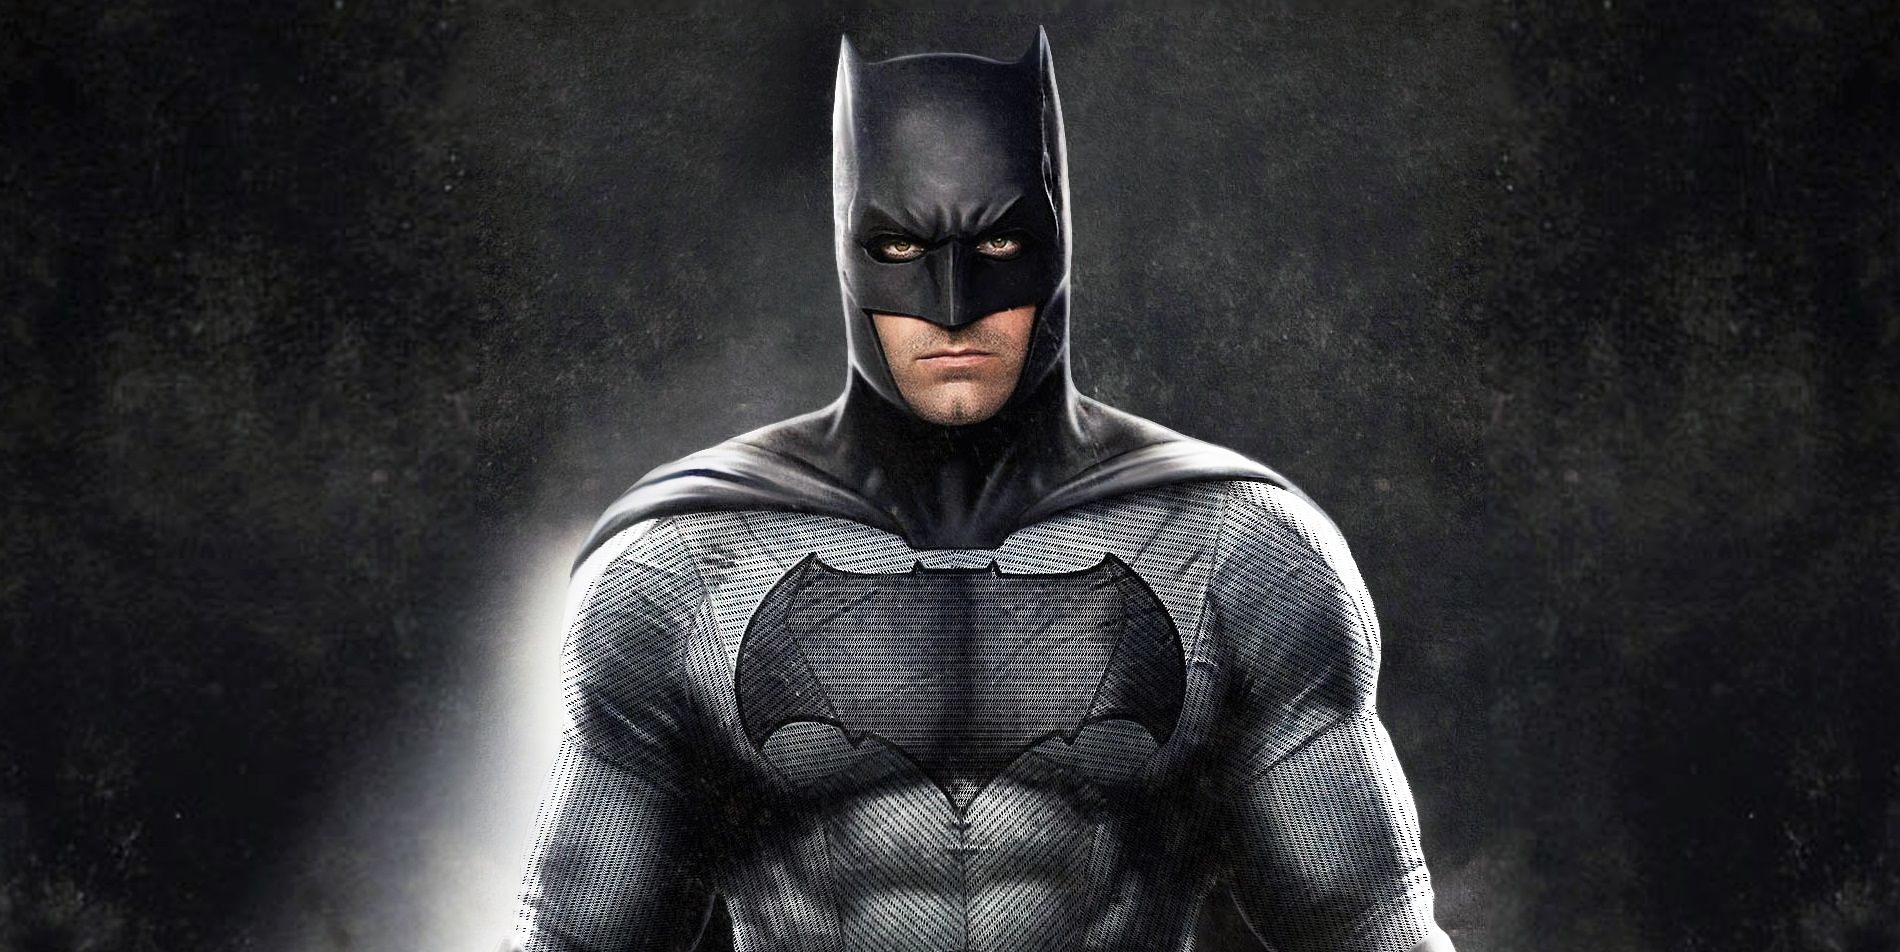 revealed-ben-affleck-s-batman-is-the-biggest-plot-twist-since-darth-vader-as-anakin-skywa-657615